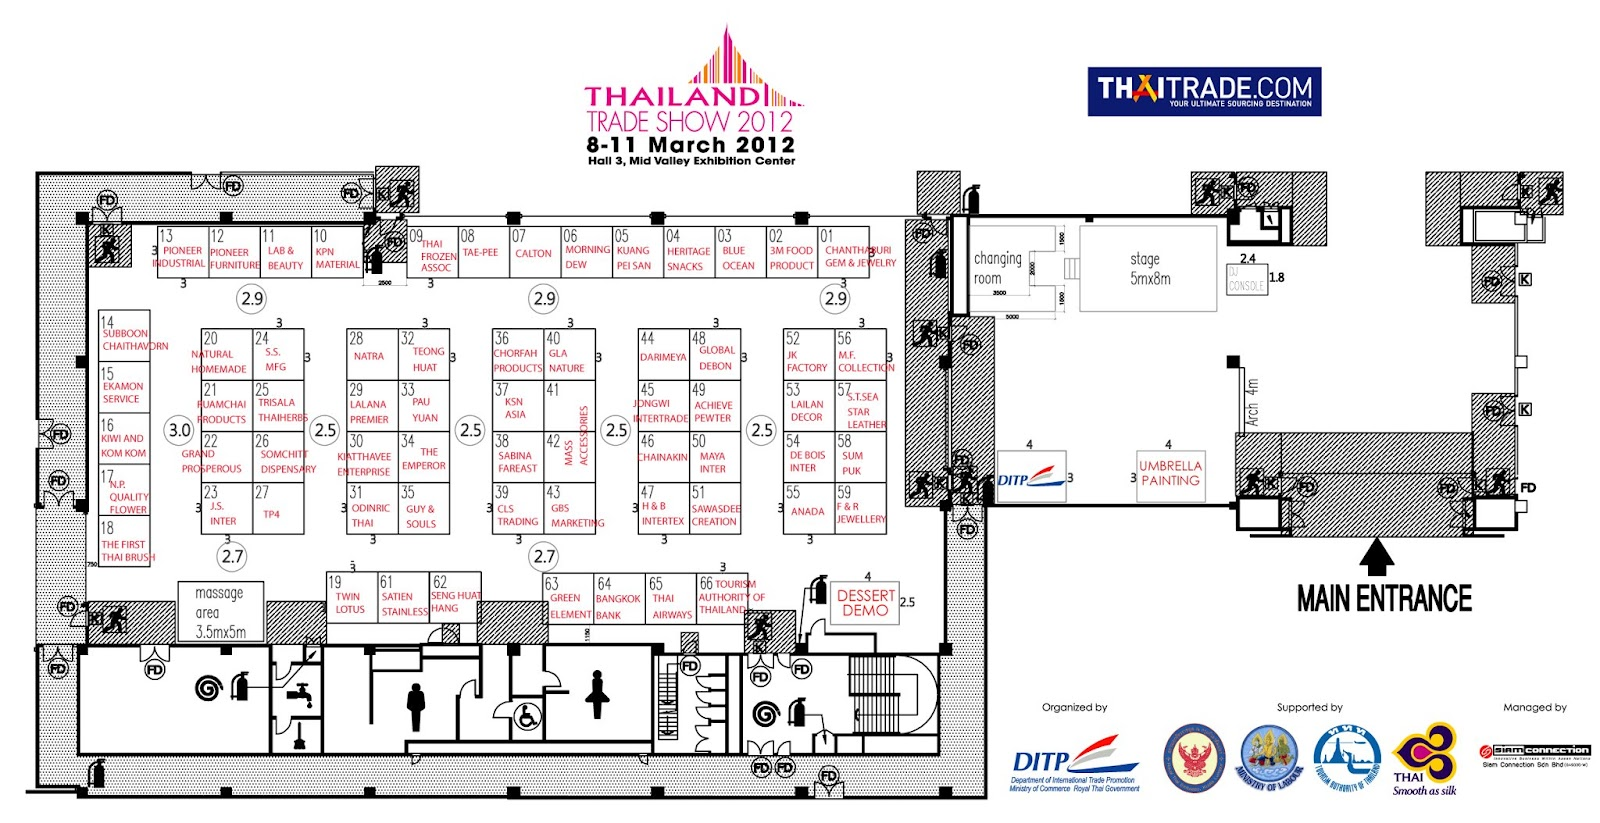 Thailand Trade Show 2012 (8 - 11 March 2012)